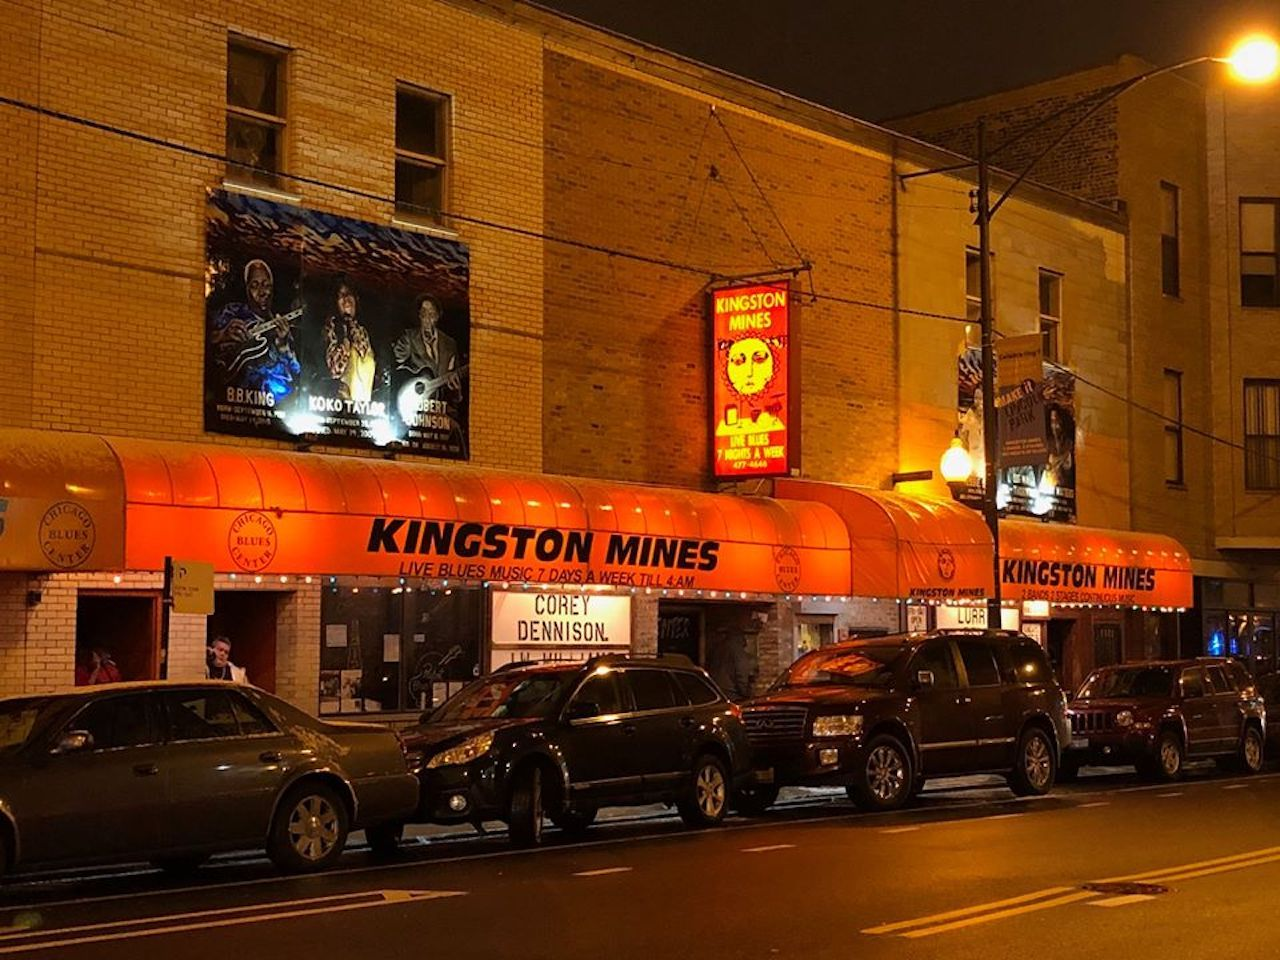 Kingston Mines music venue in Chicago